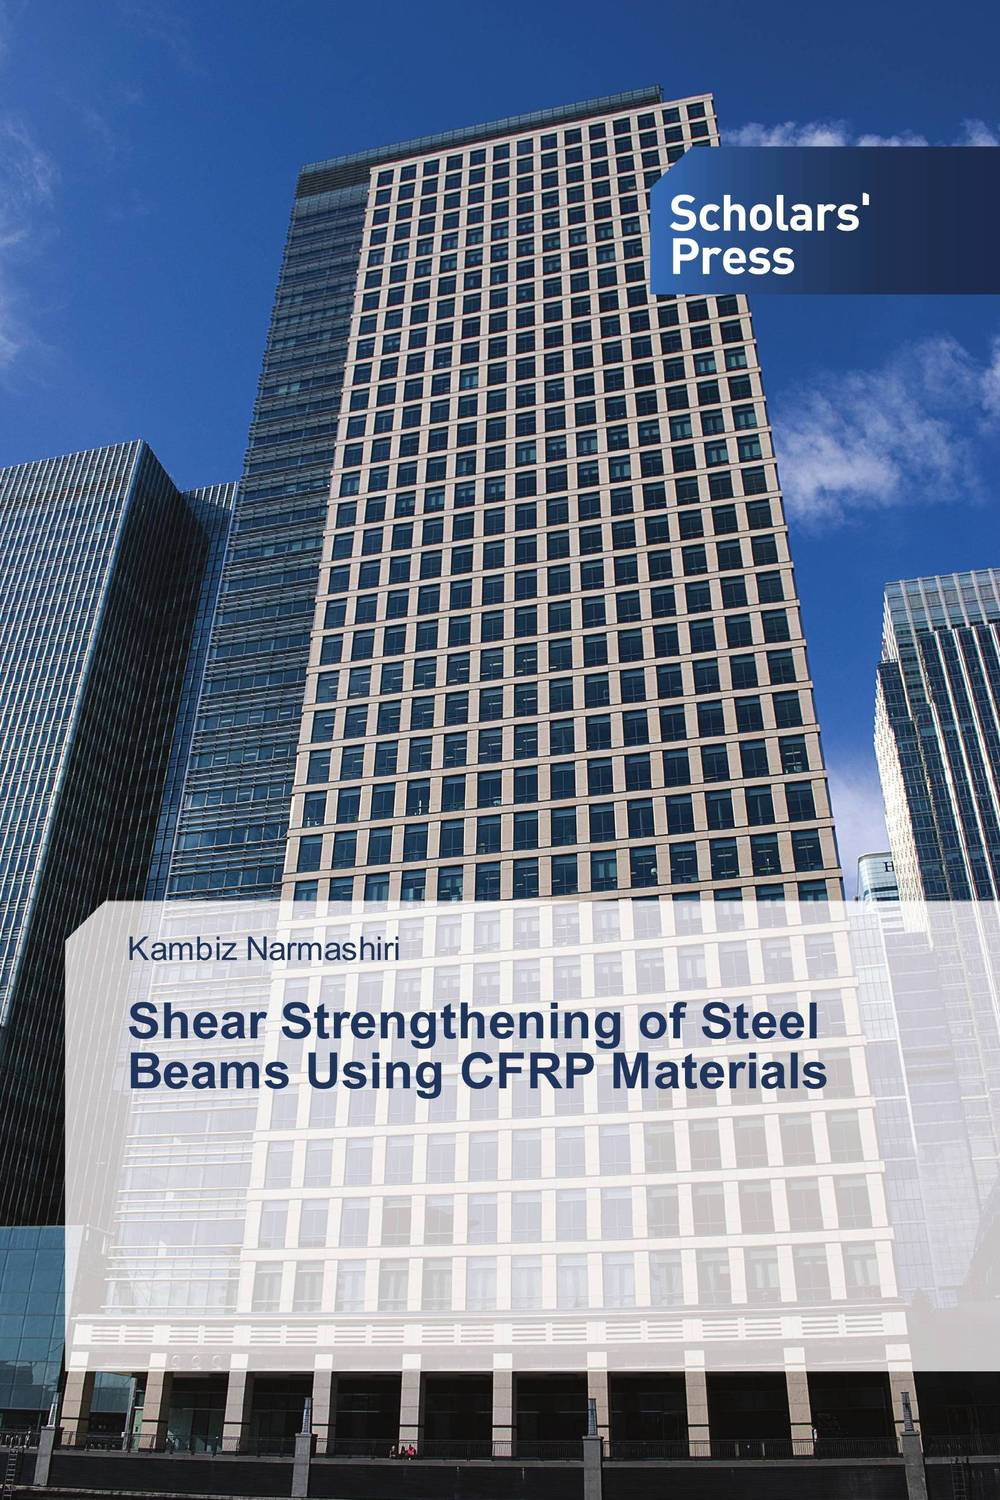 Shear Strengthening of Steel Beams Using CFRP Materials stability and ductility of steel structures sdss 99